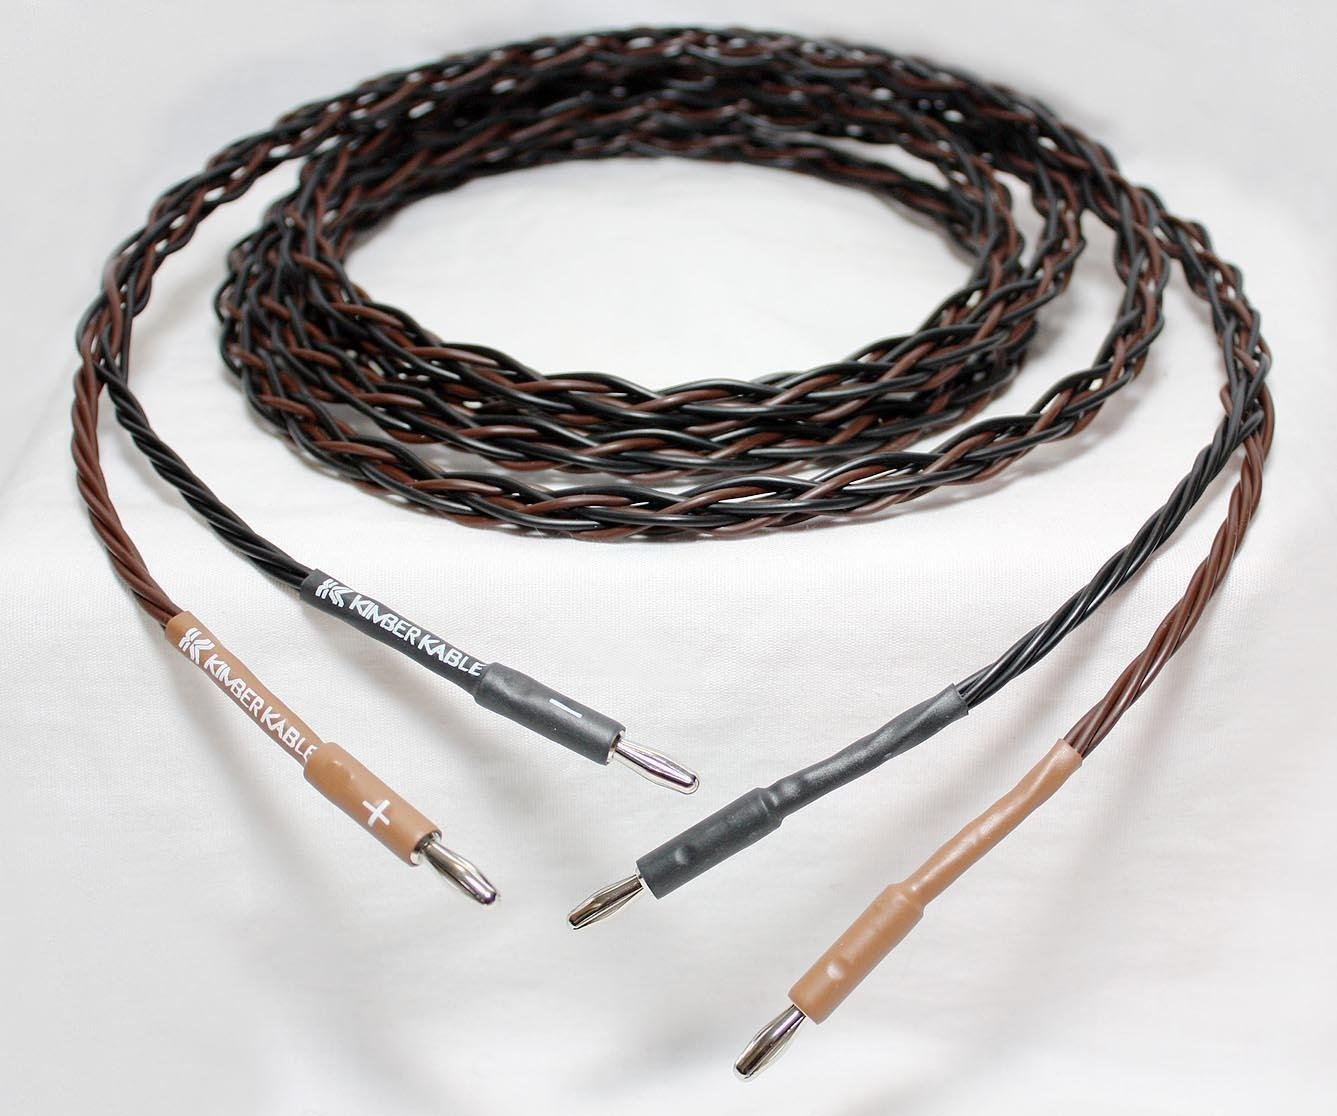 Kimber Kable 4PR Speaker Cable with SBAN Standard 4mm Banana Plugs ...